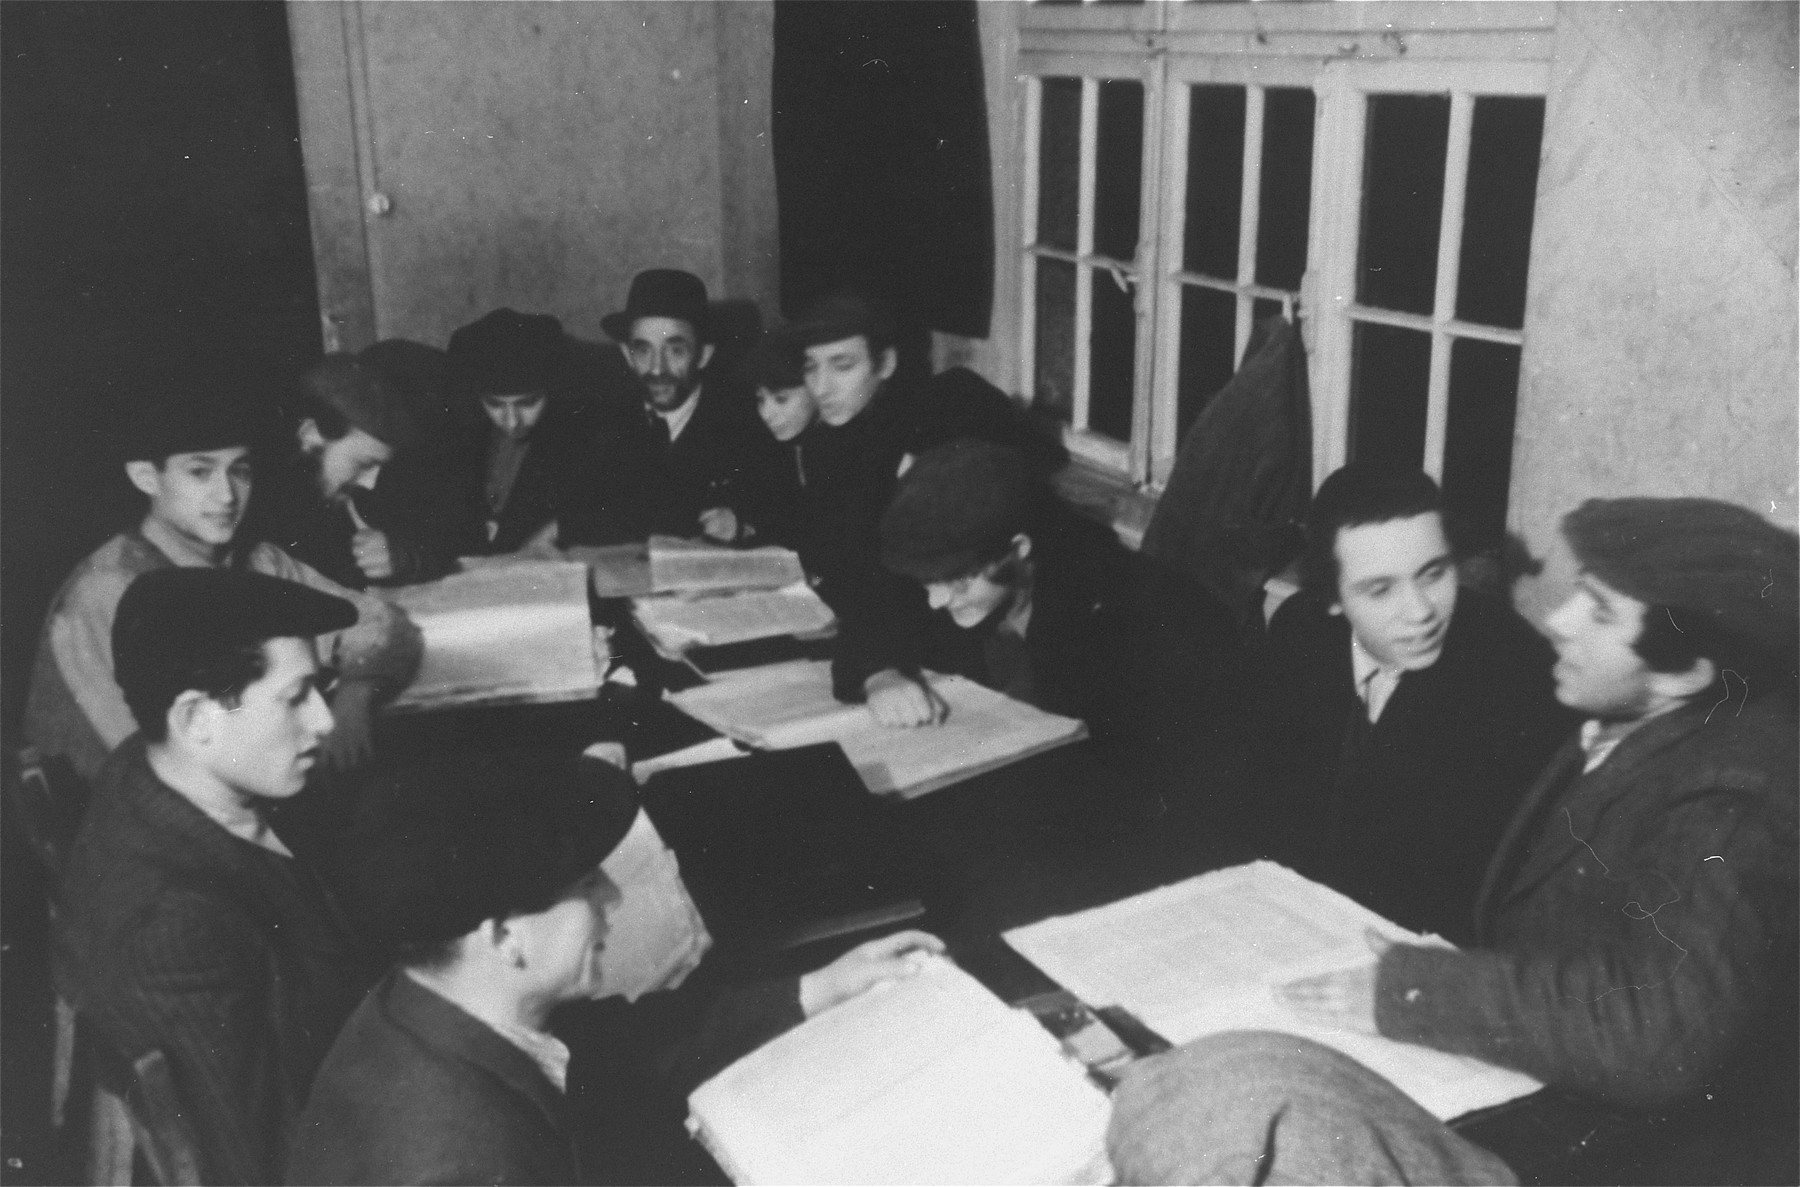 Students study Talmud at a Yeshiva in the Zeilsheim displaced persons' camp.